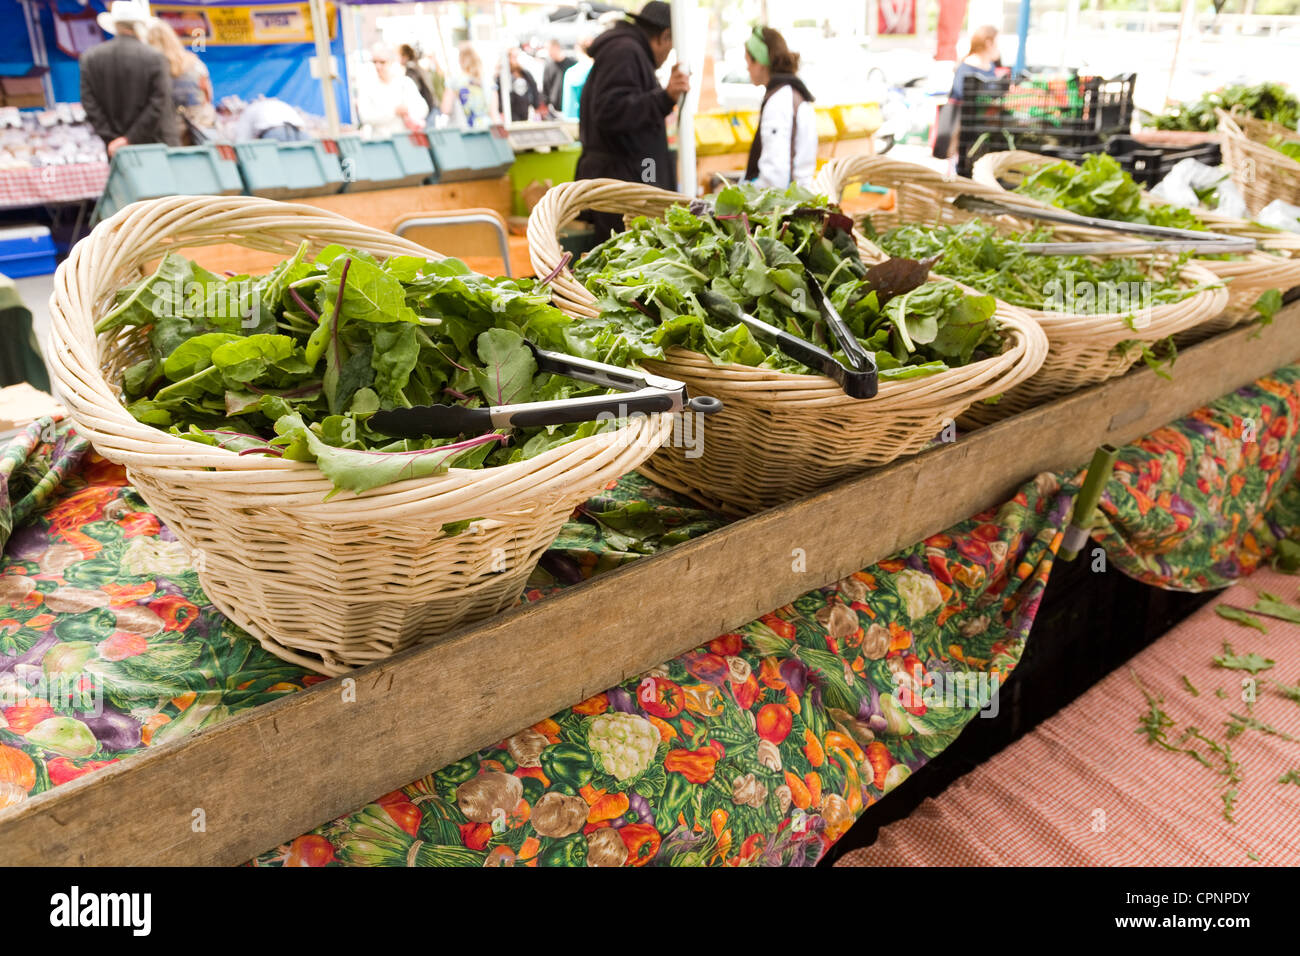 Fresh greens in the Farmers' Market, outside San Francisco's famous Ferry Building on the Embarcadero.  - Stock Image